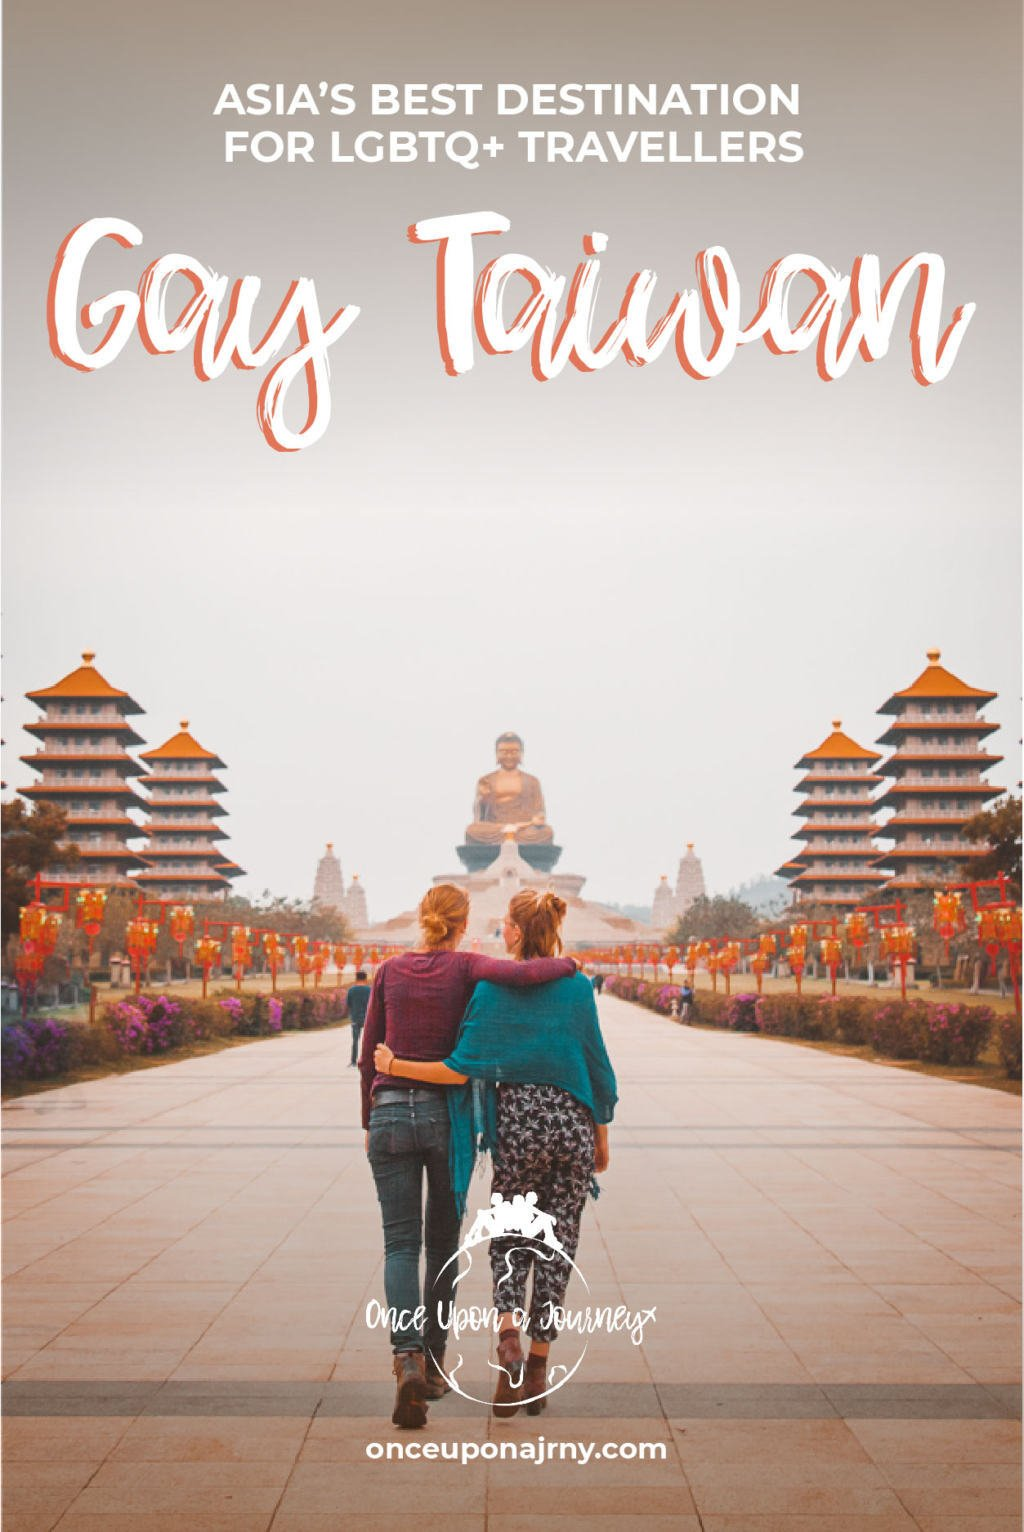 Gay Taiwan: Asia's best destination for LGBTQ+ travellers